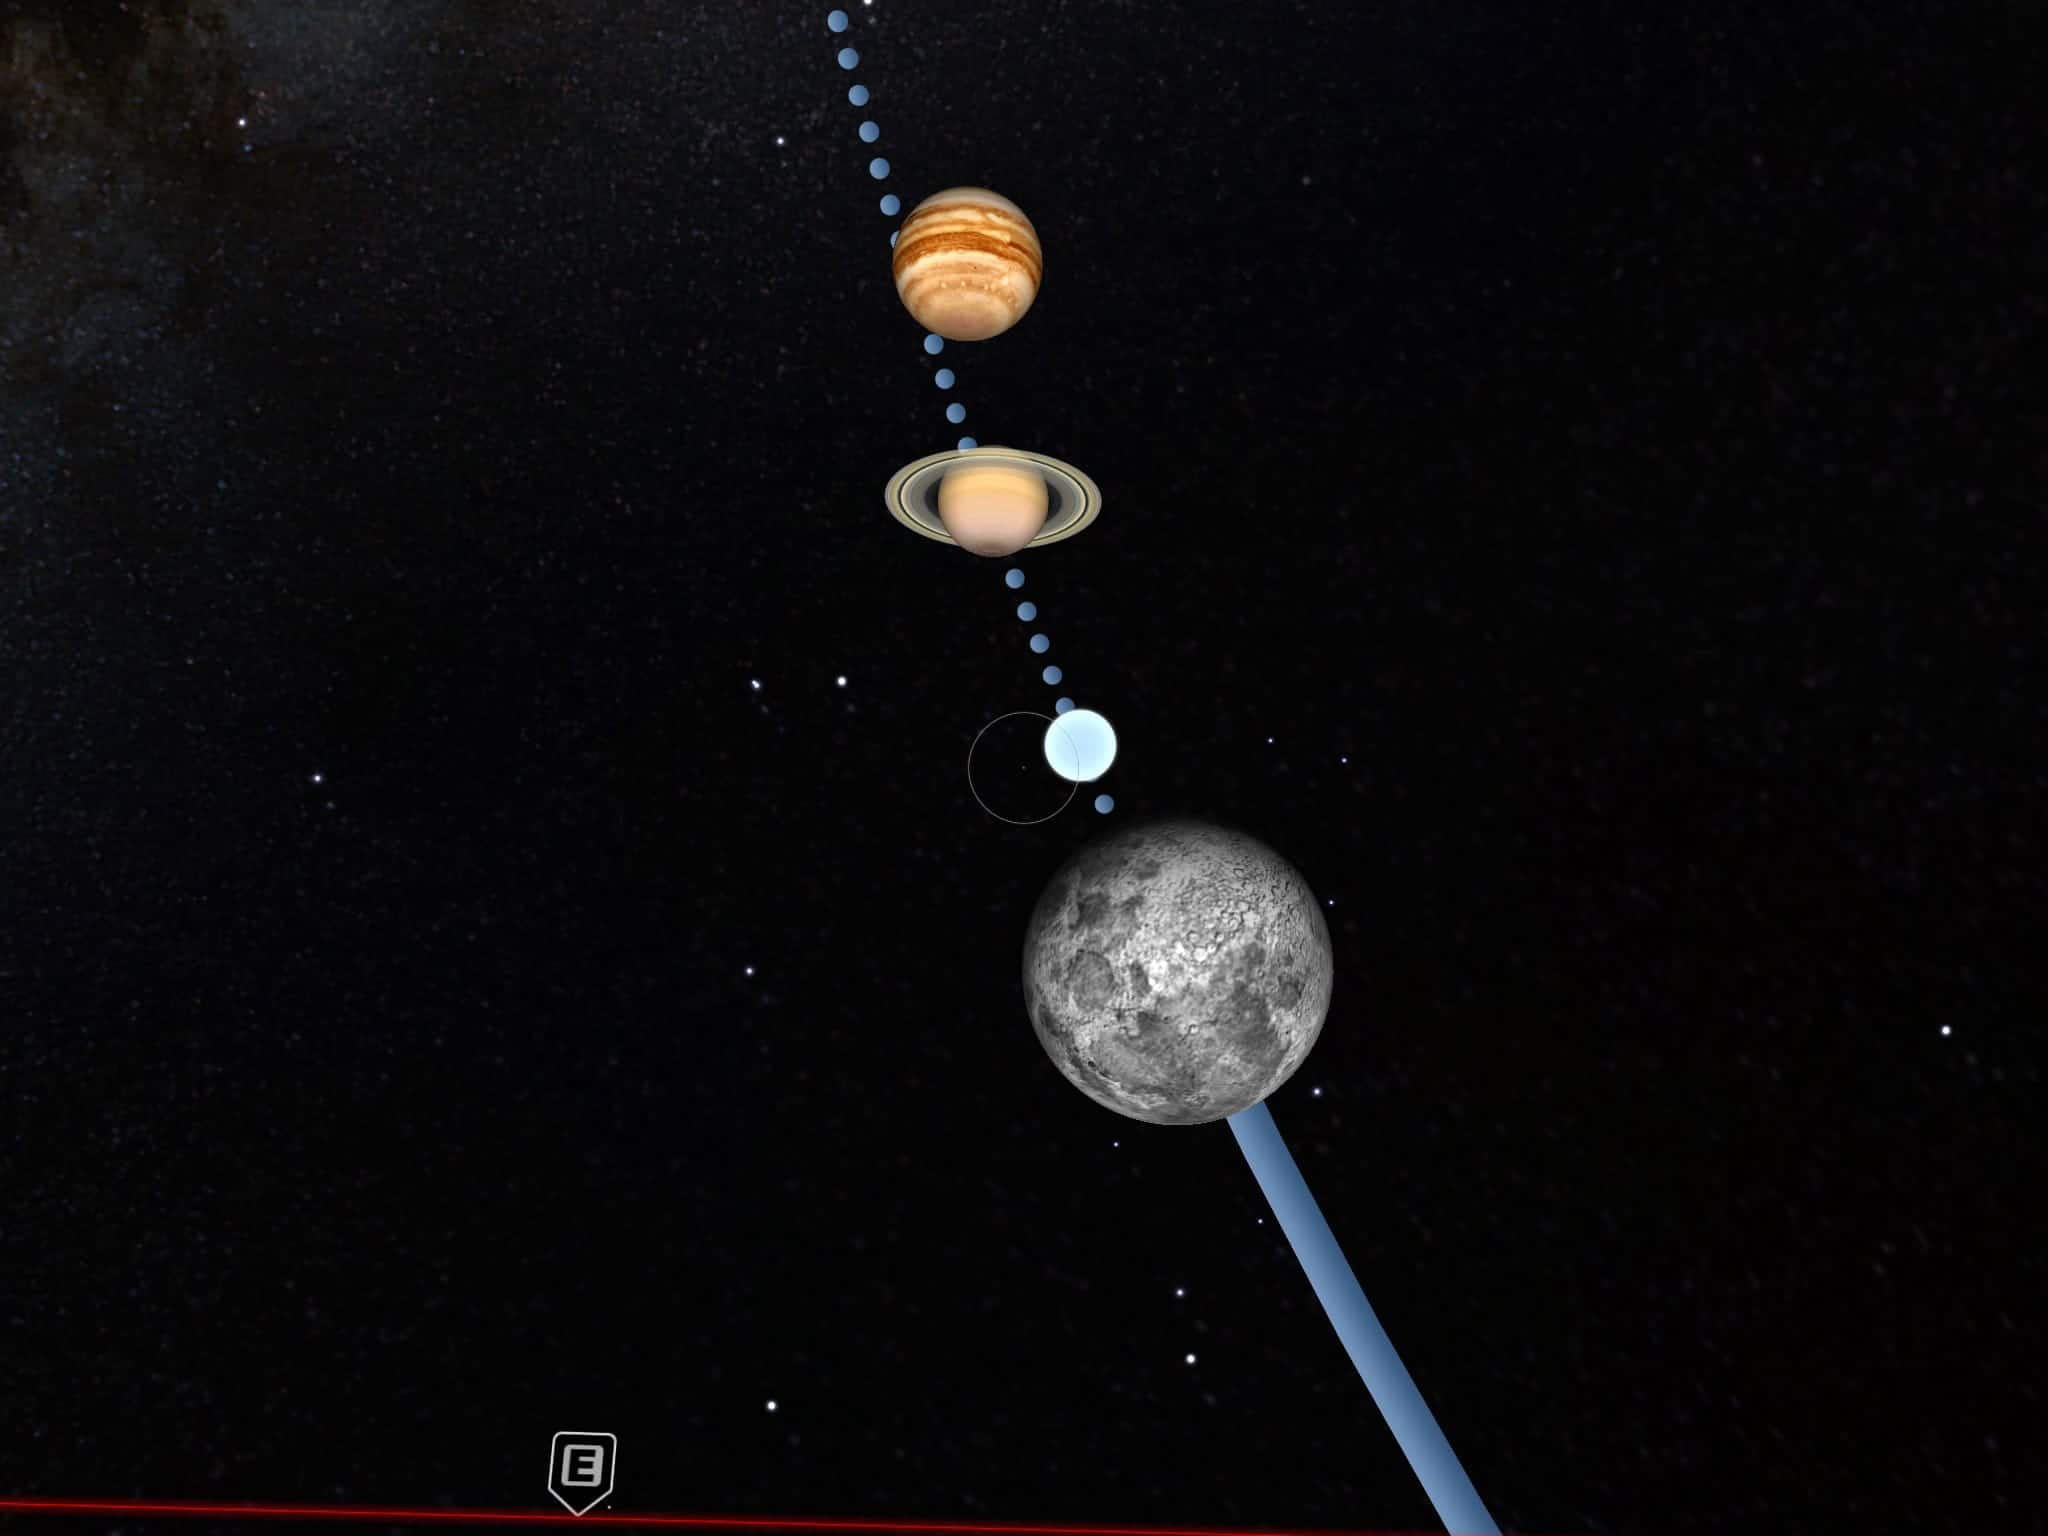 Planets on the ecliptic, Saturn Jupiter near the Moon